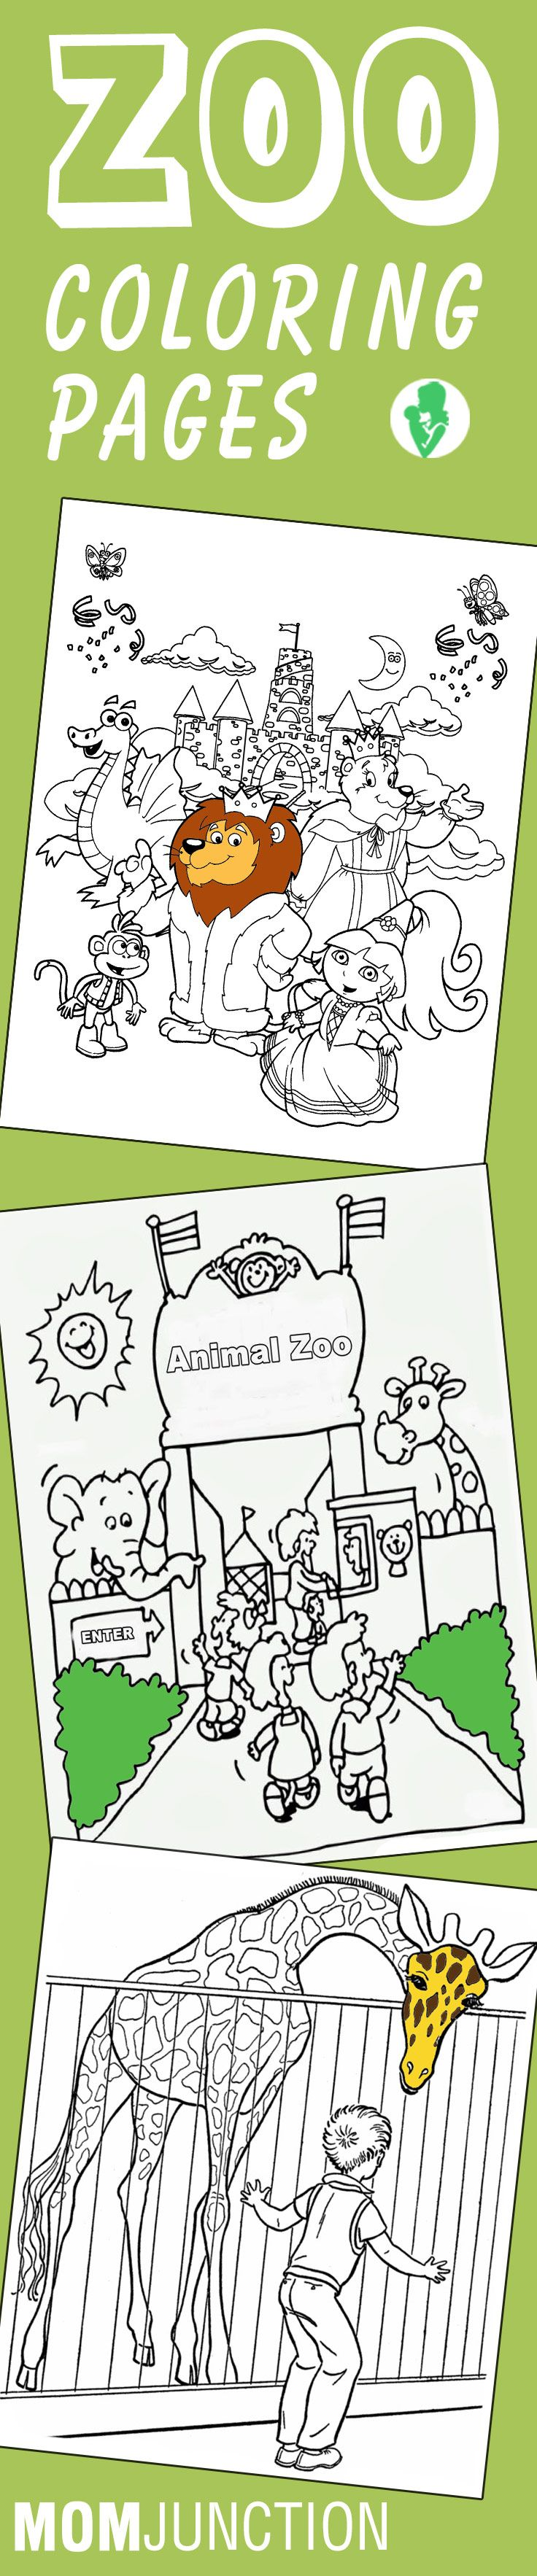 Printable zoo coloring book - Top 25 Free Printable Zoo Coloring Pages Online